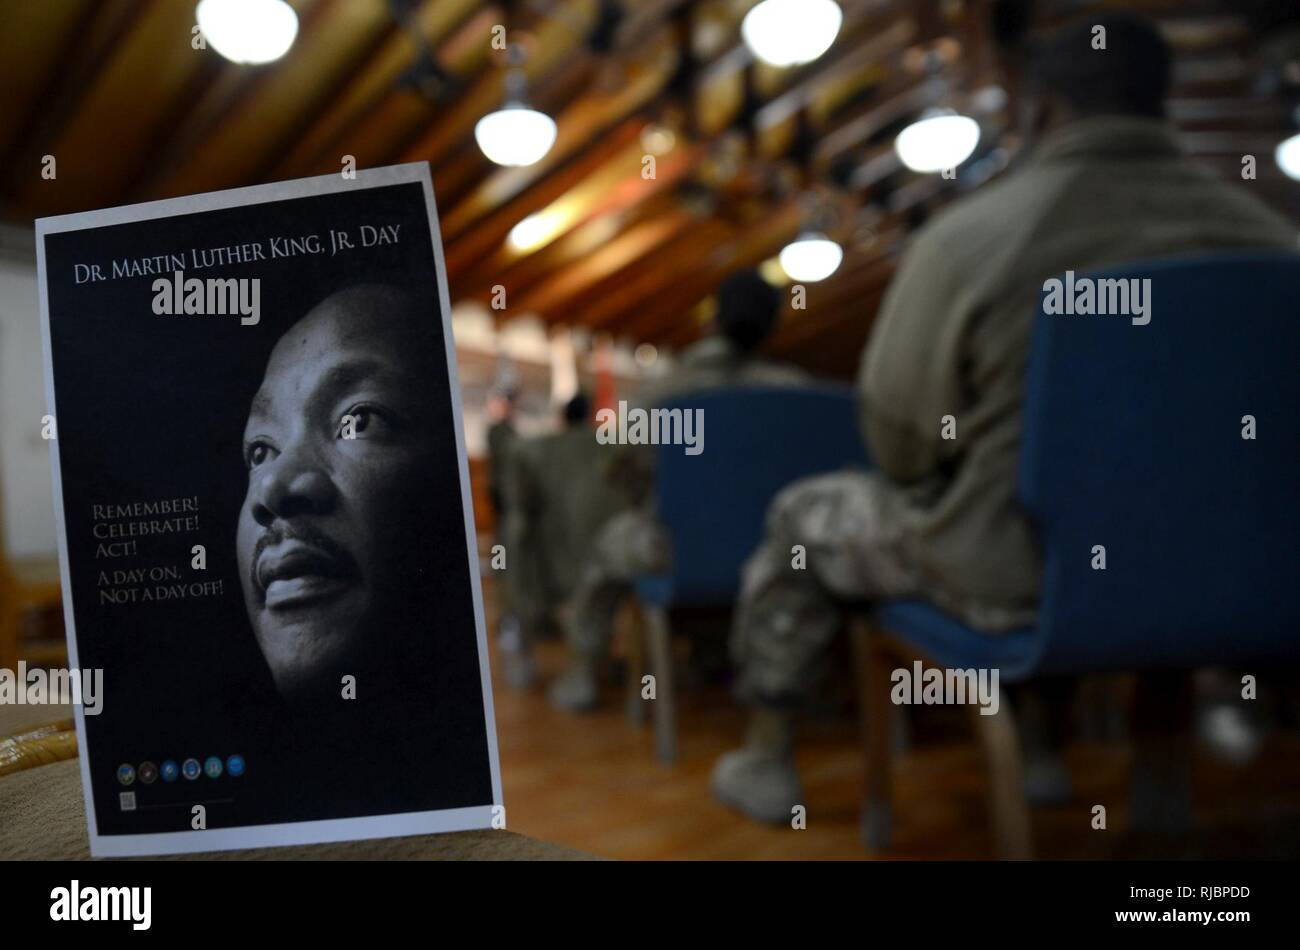 Members of Bagram Airfield gathered at the Enduring Faith Chapel to celebrate Martin Luther King Day Jan. 15, 2018 at Bagram Airfield, Afghanistan. MLK Day is a federal holiday held on the third Monday of January. It celebrates the life and achievements of Martin Luther King Jr., an influential American civil rights leader who is most well-known for his campaigns to end racial segregation on public transport and for racial equality in the United States. - Stock Image